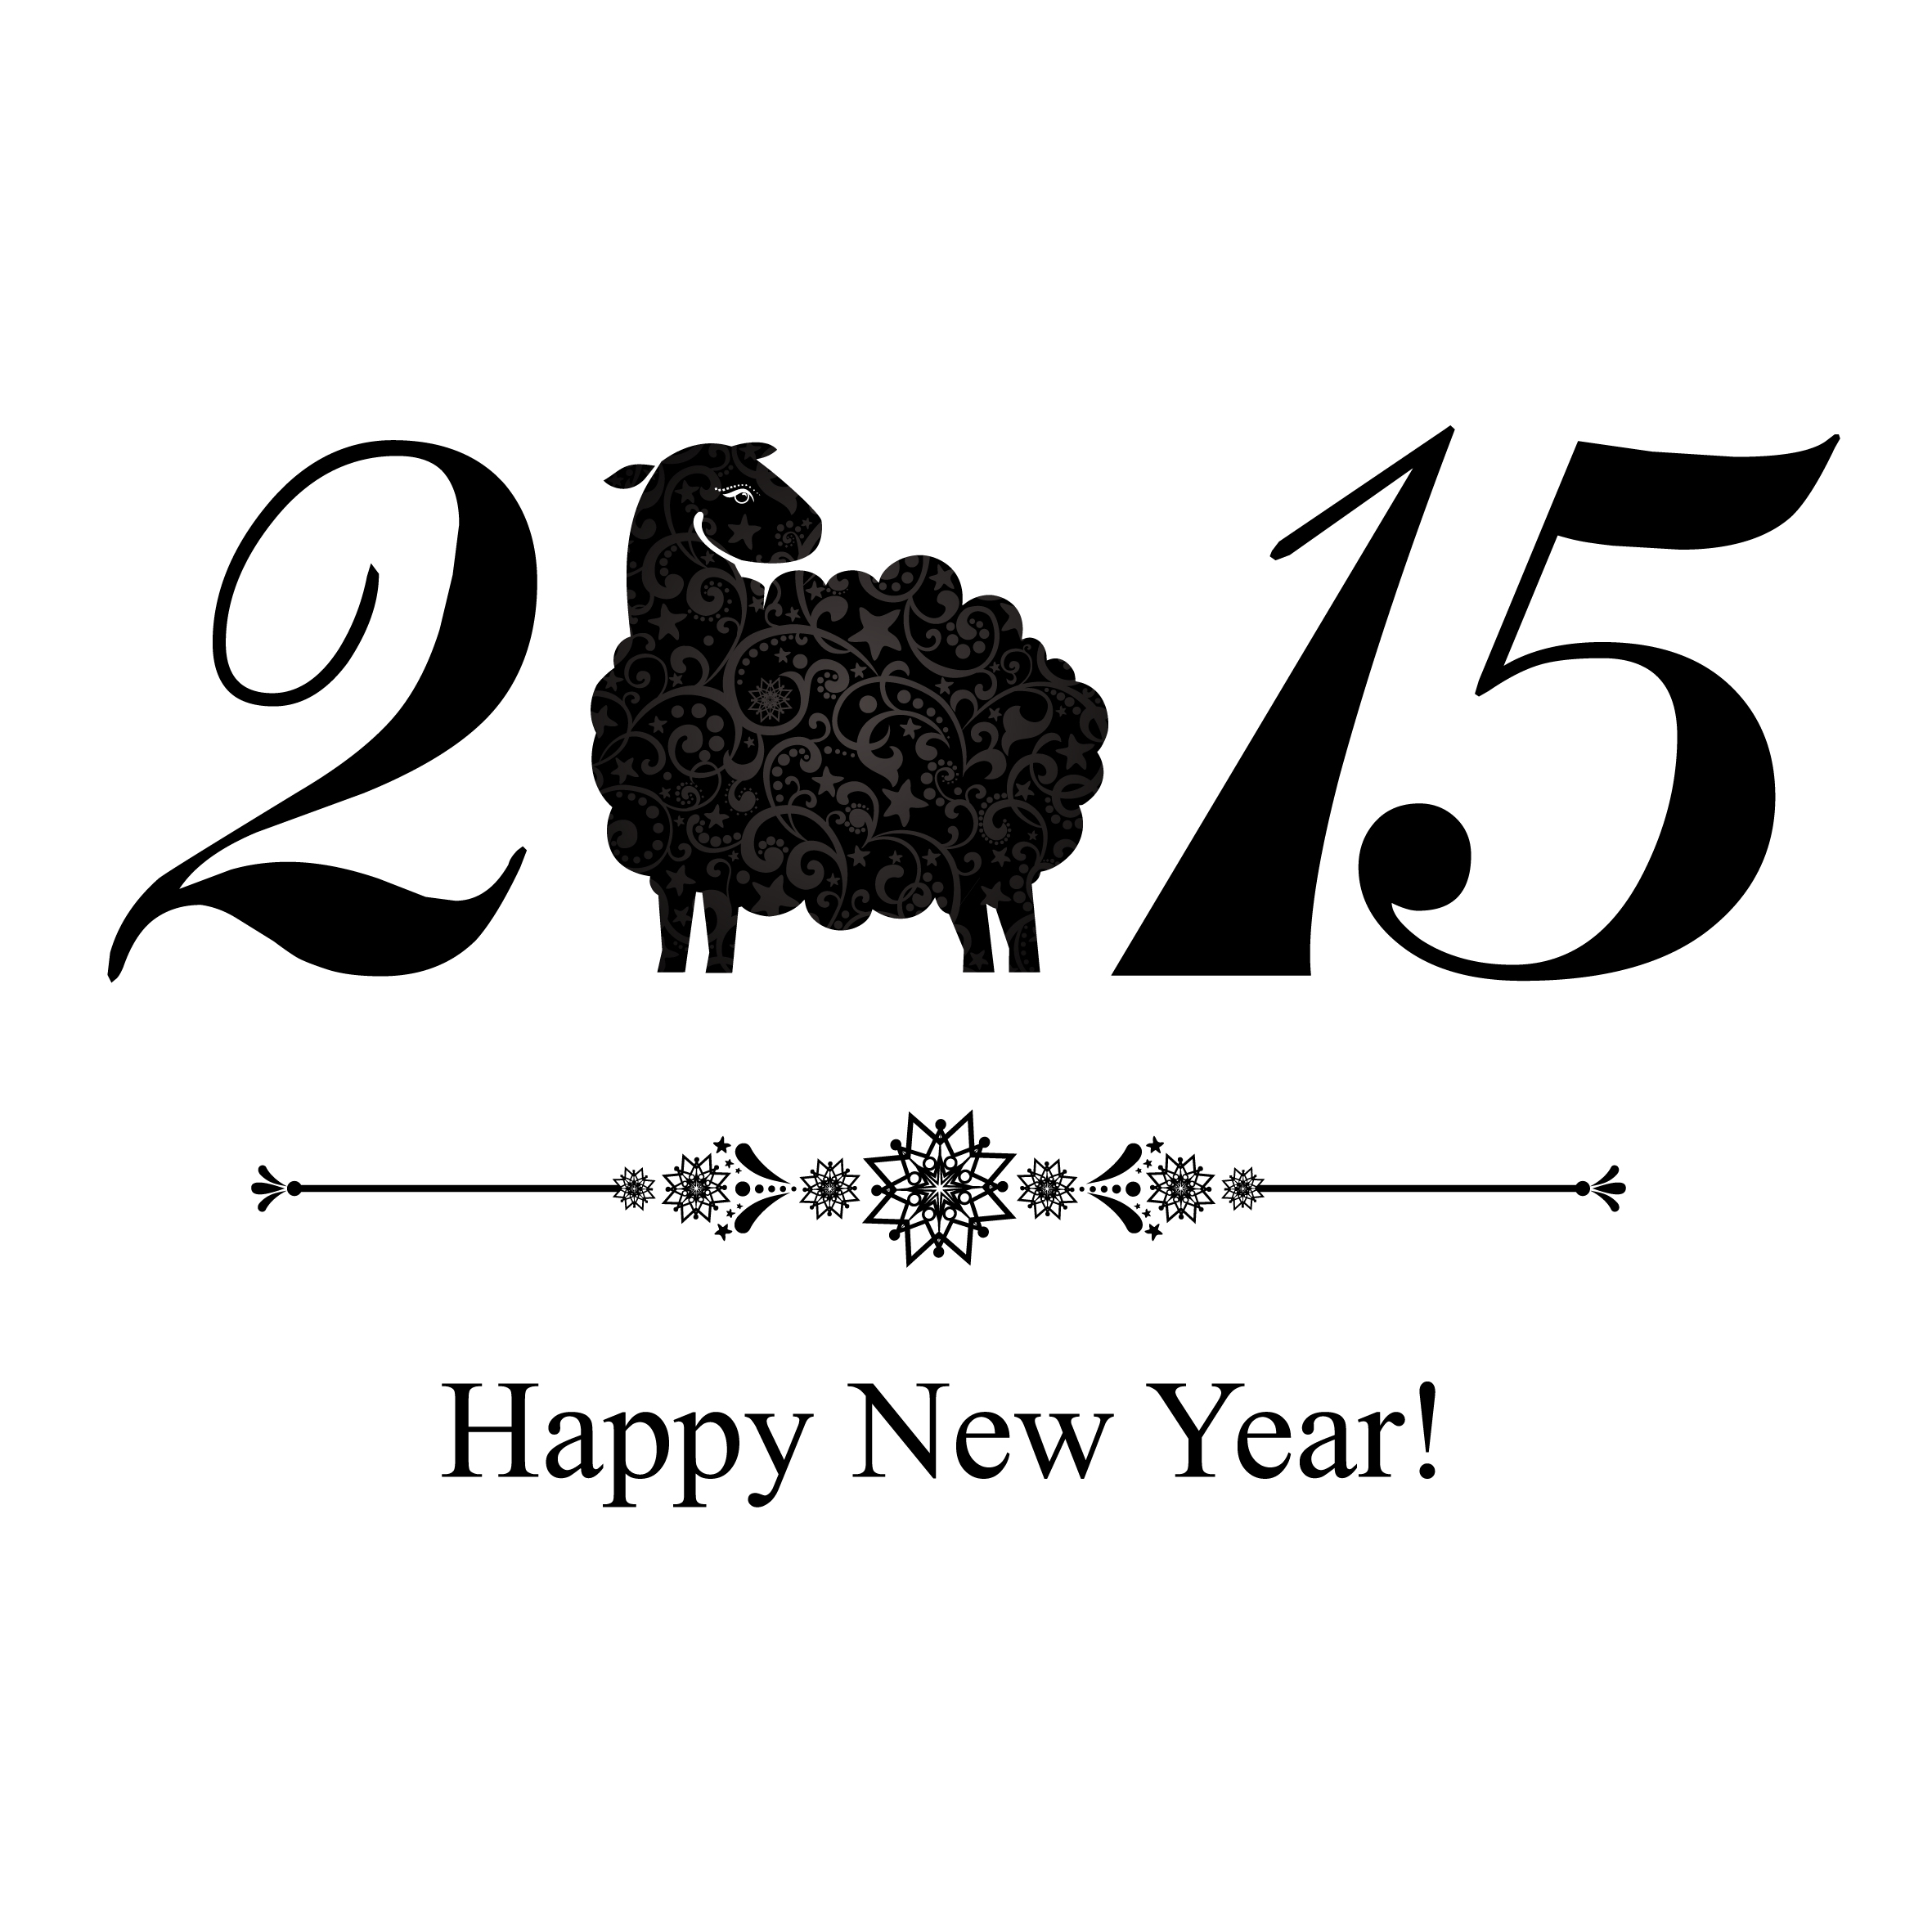 2015 sheep year background creative vector 03